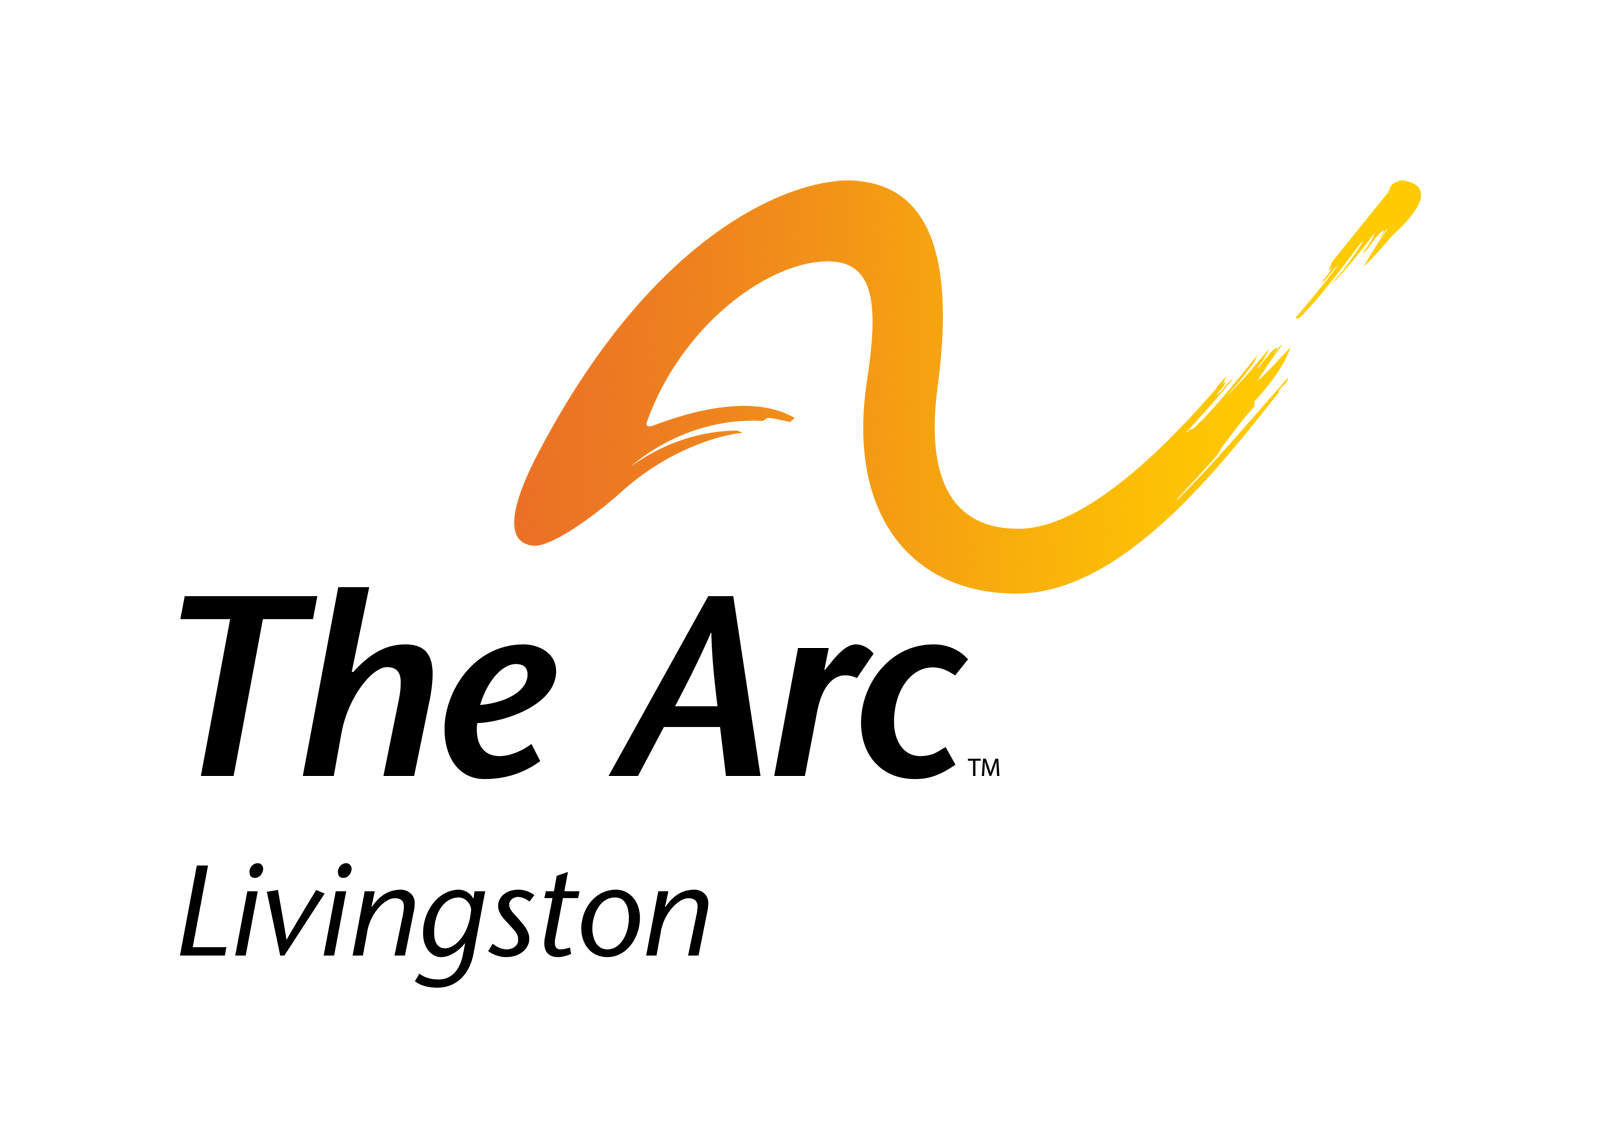 Arc_Livingston_Color_Pos_JPG.jpg